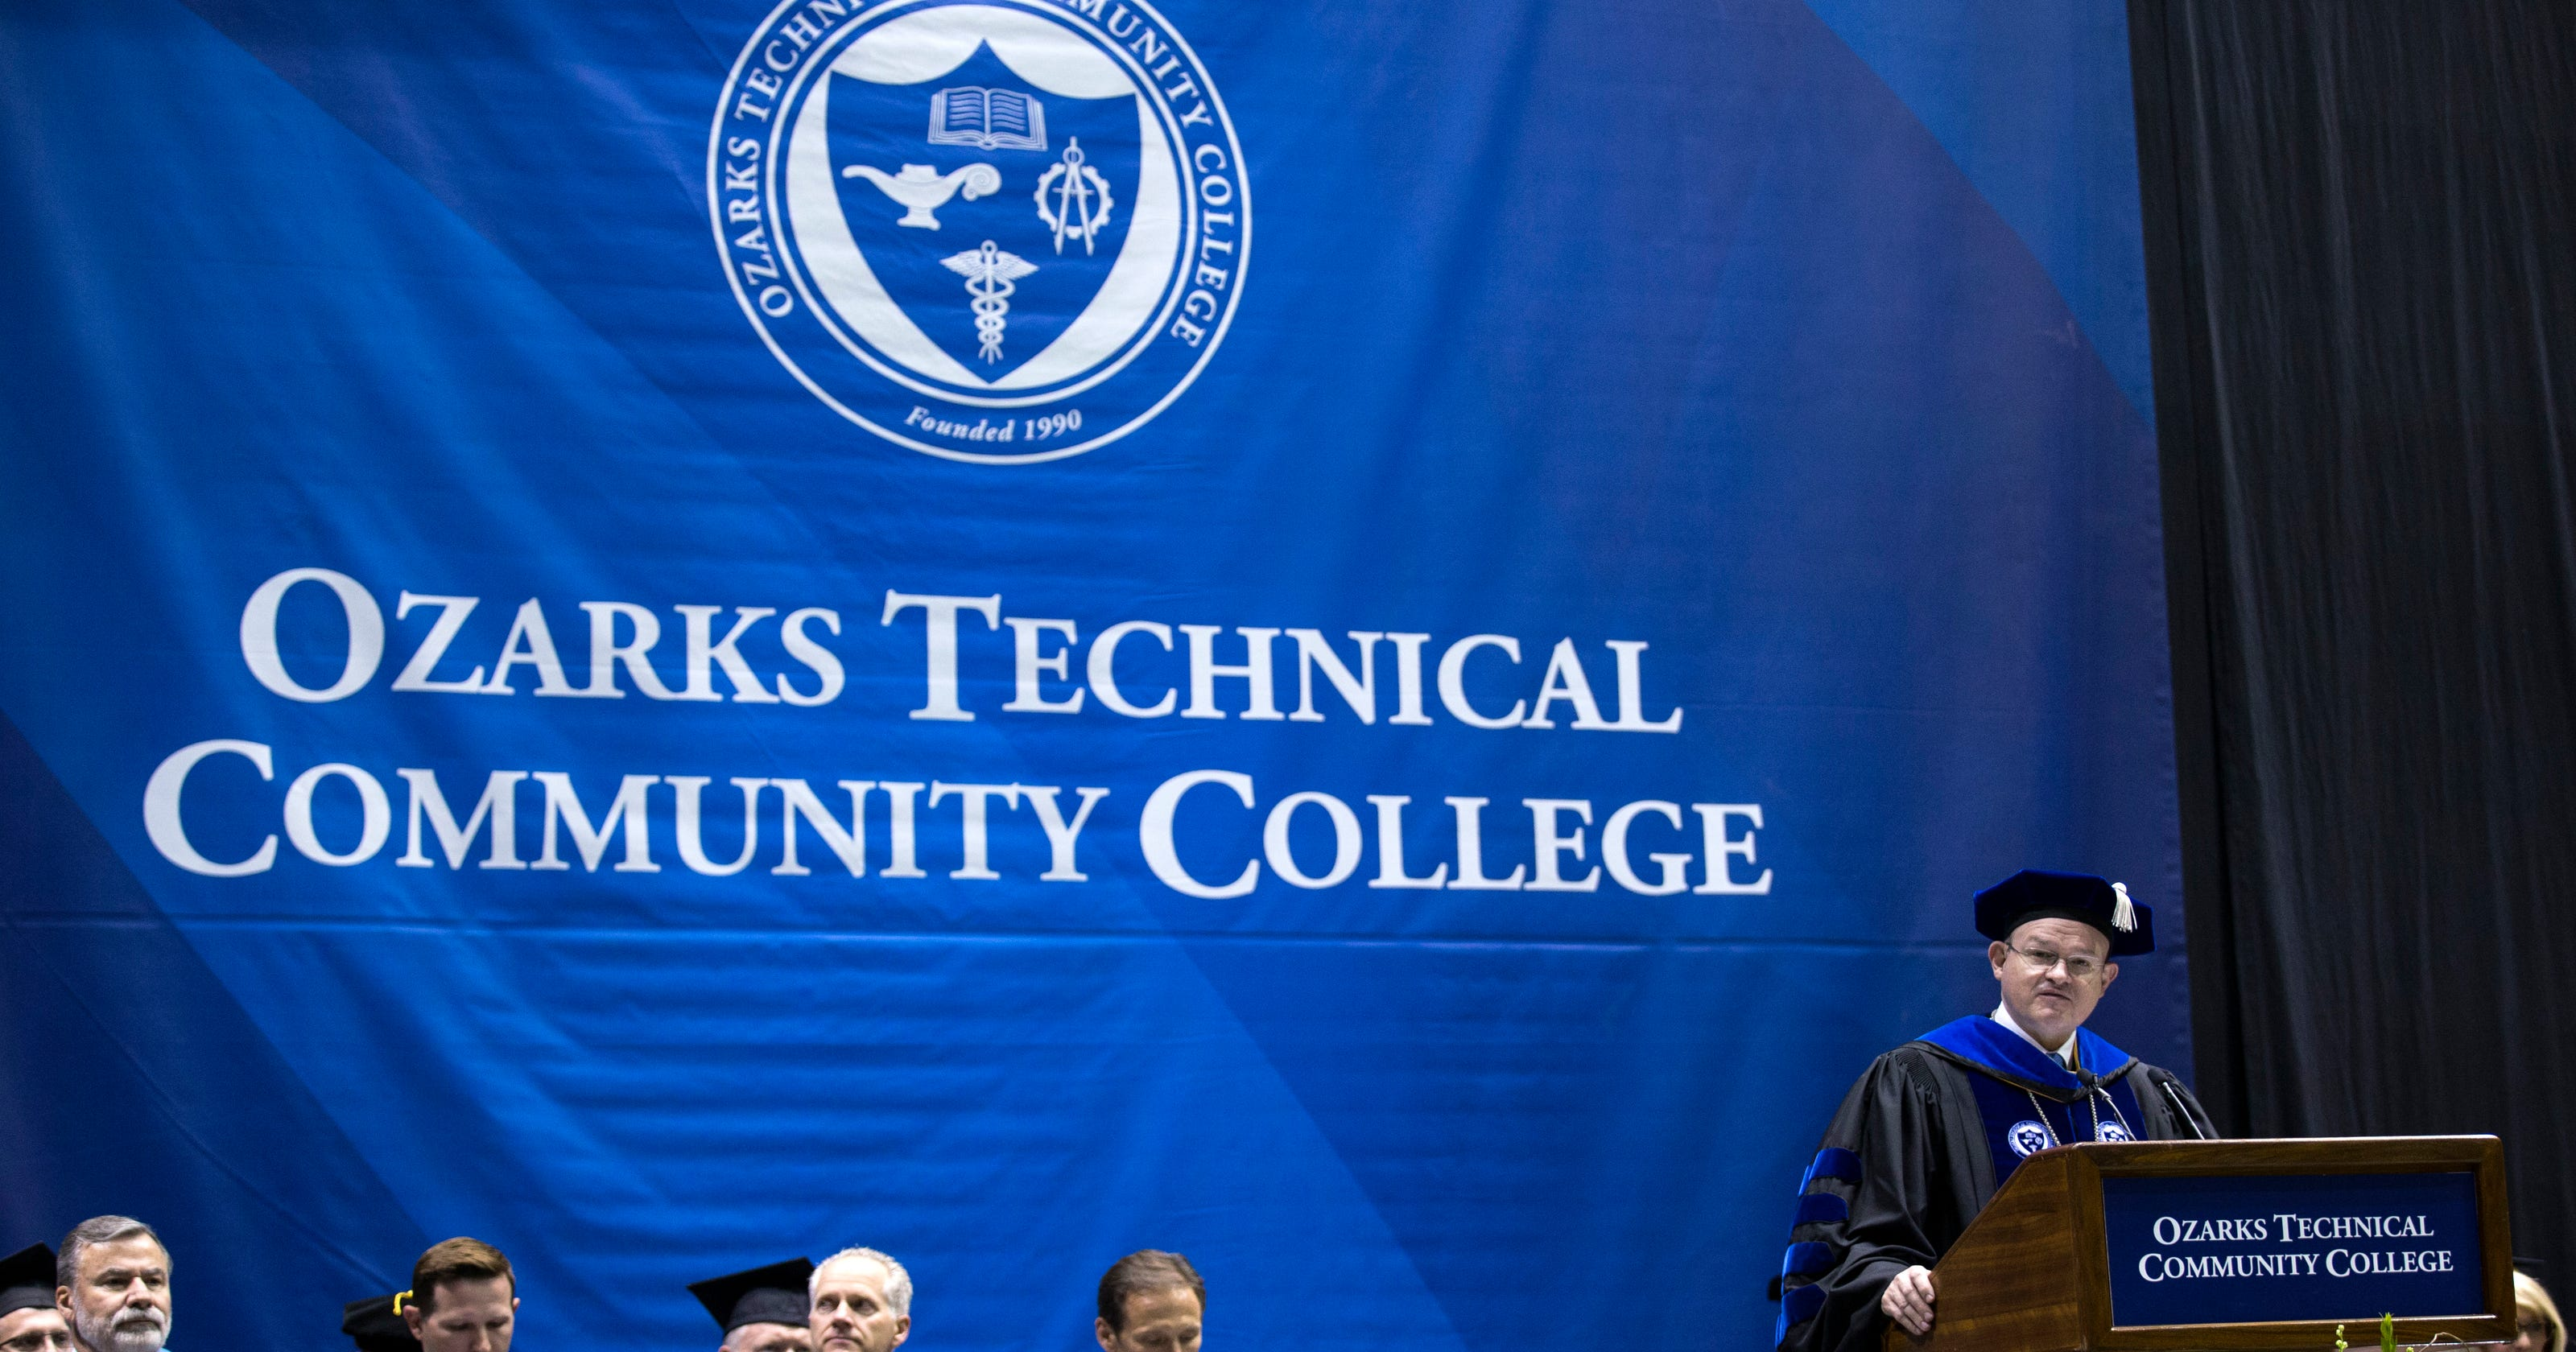 Ozarks Technical Community College may expand to Lake of the